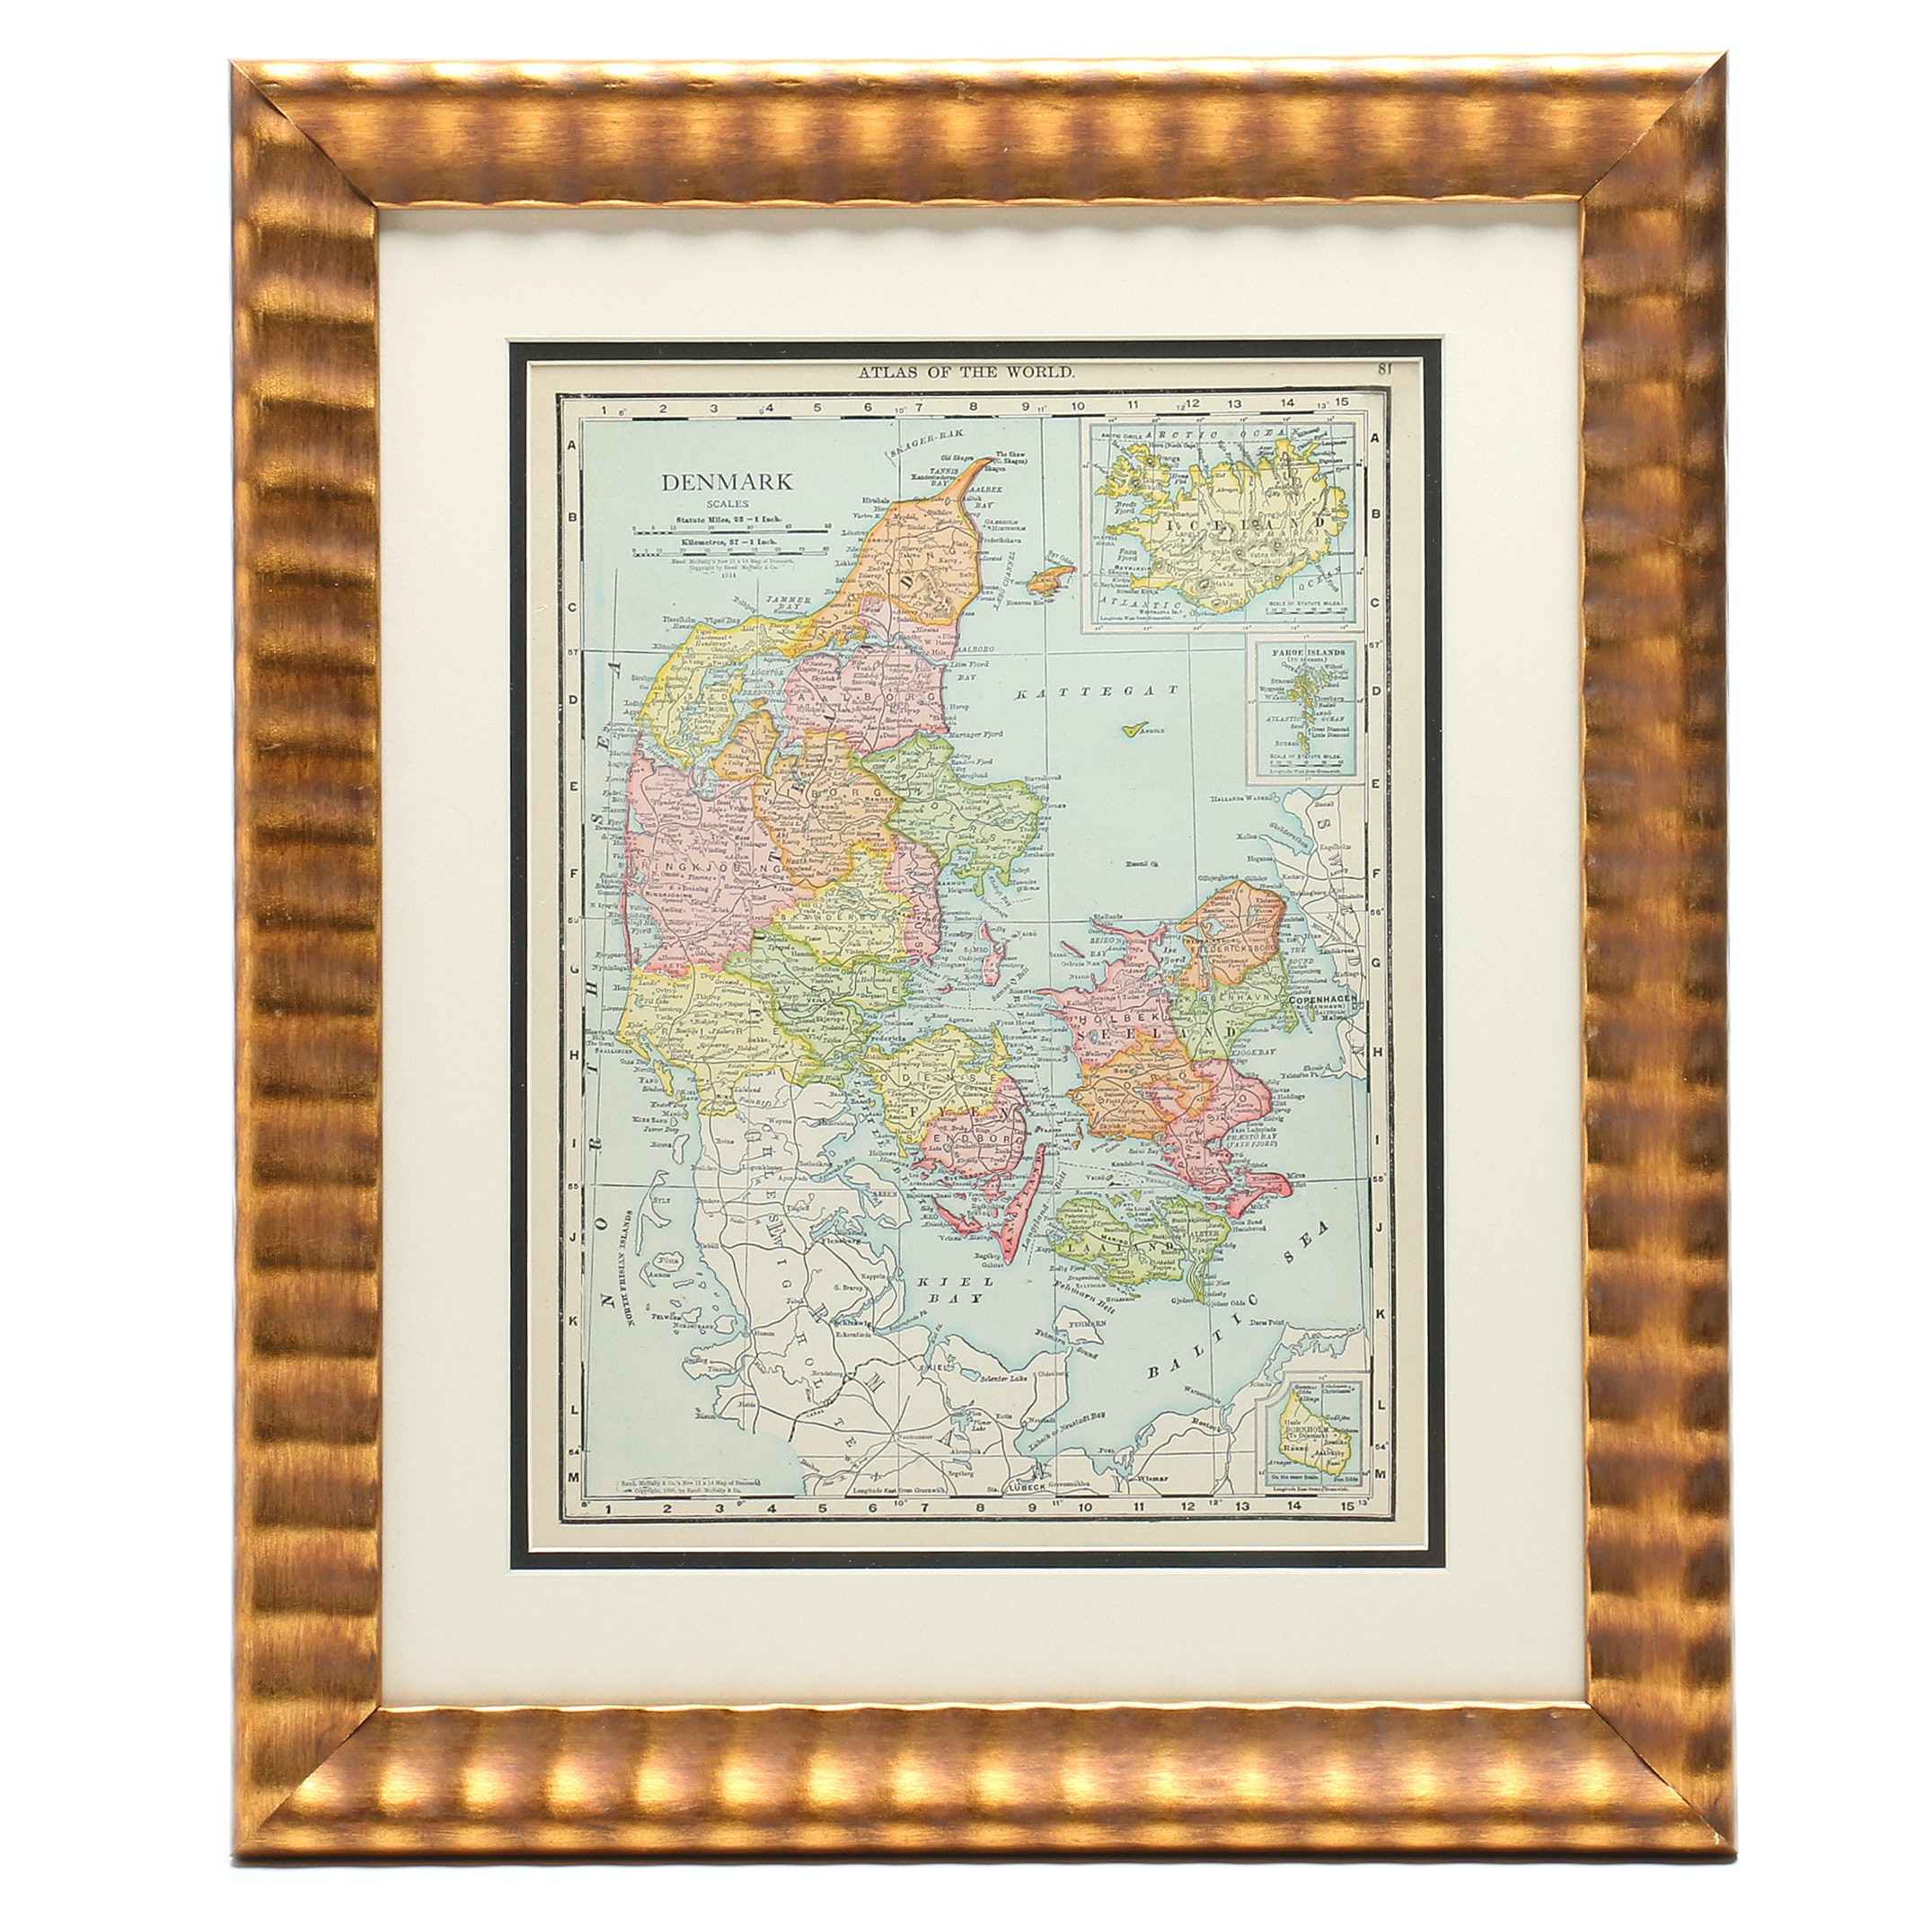 Original 1895 Wood Engraving Map of Denmark from Rand, McNally & Co.